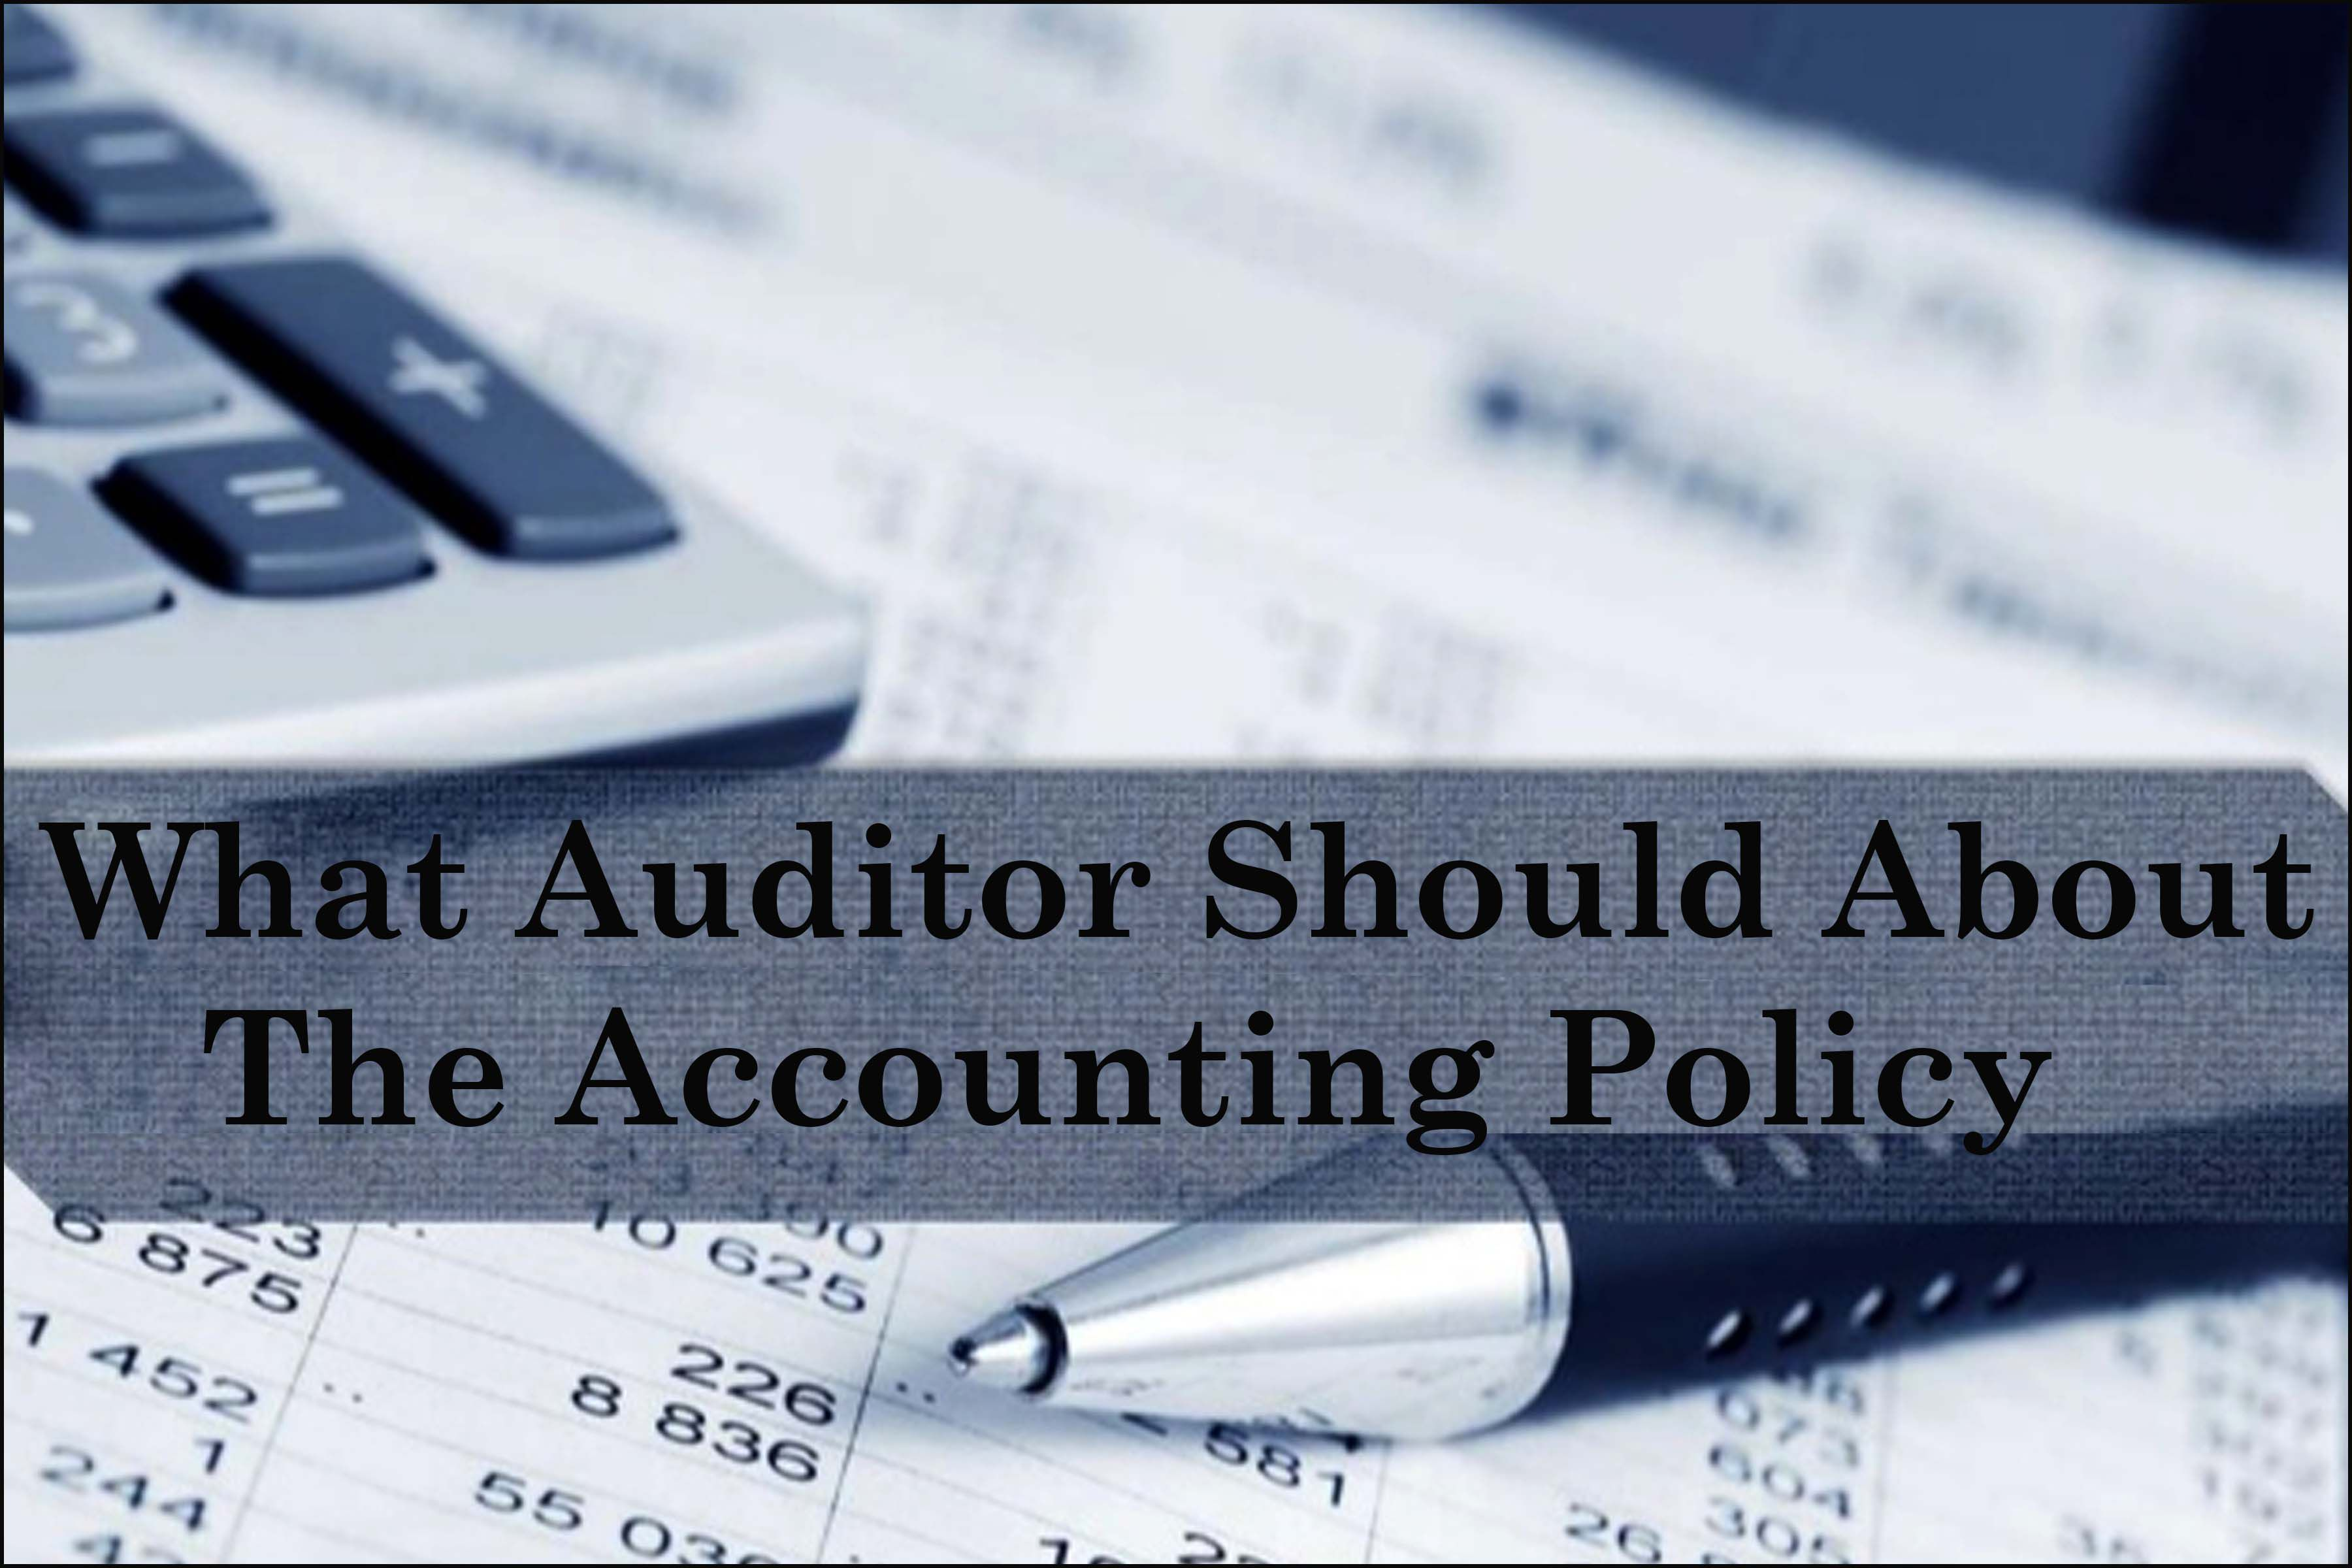 What Auditor should consider about the Accounting Policy?